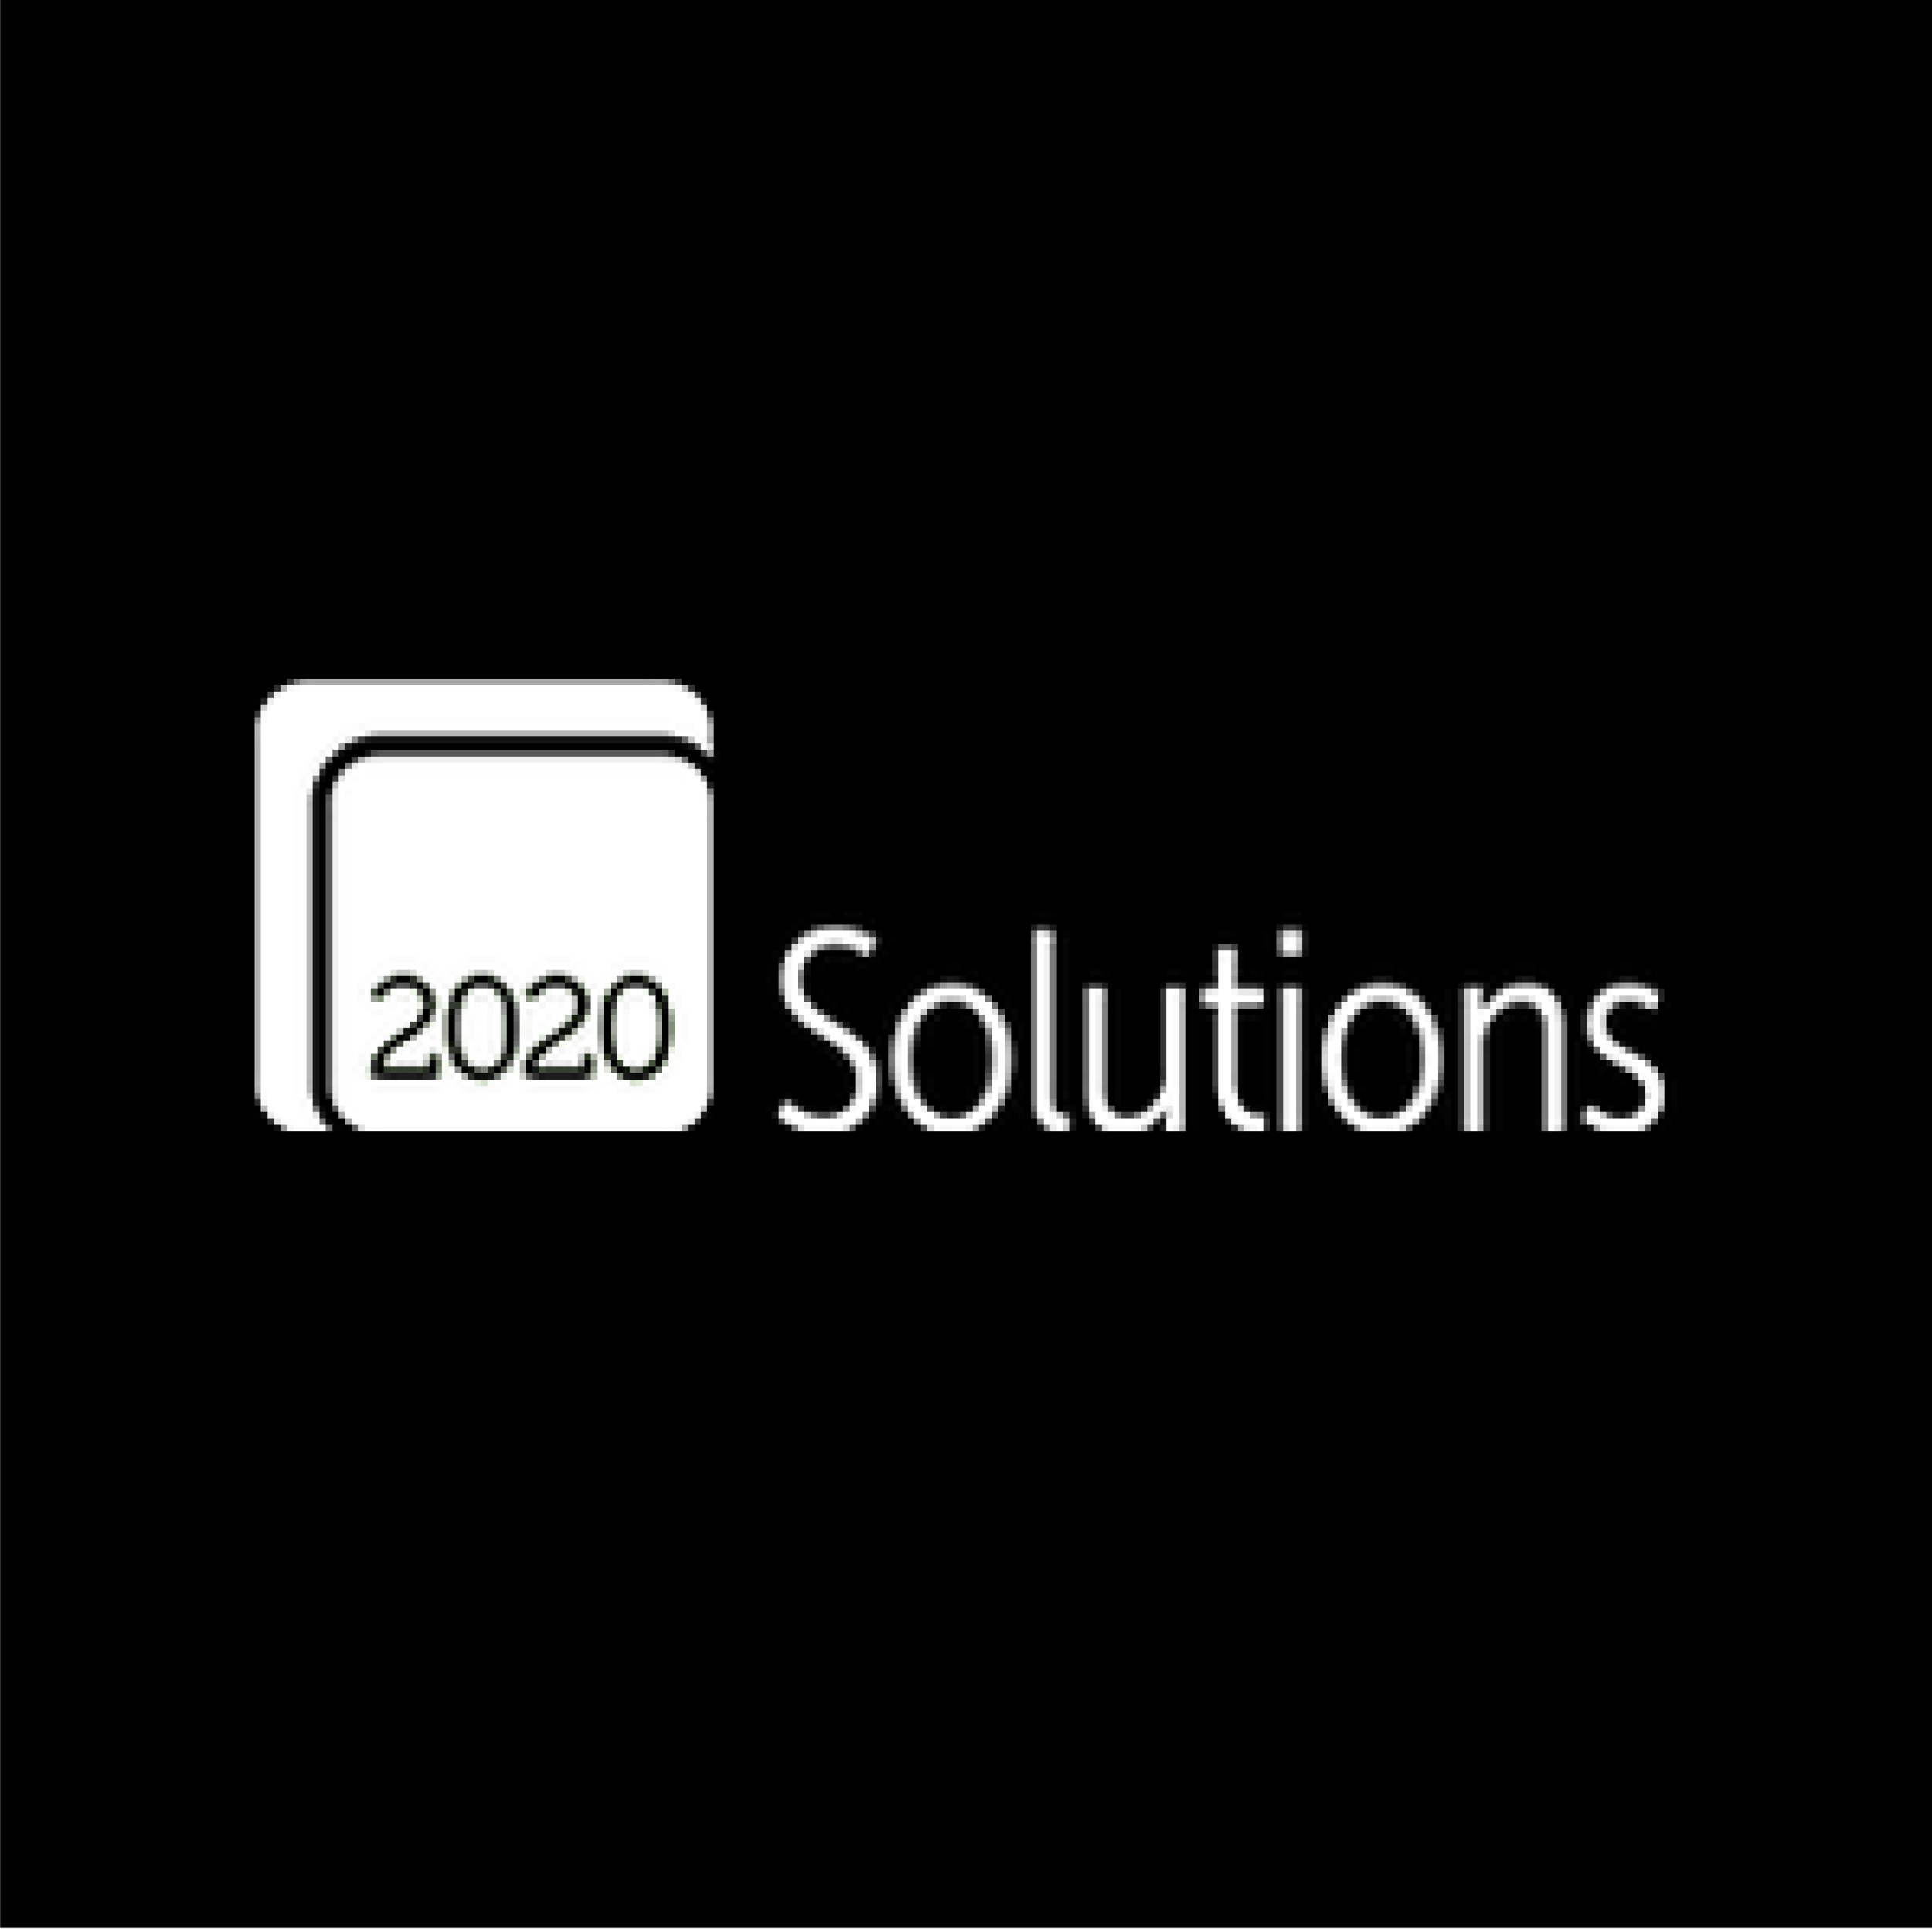 2020Solutions-01.png